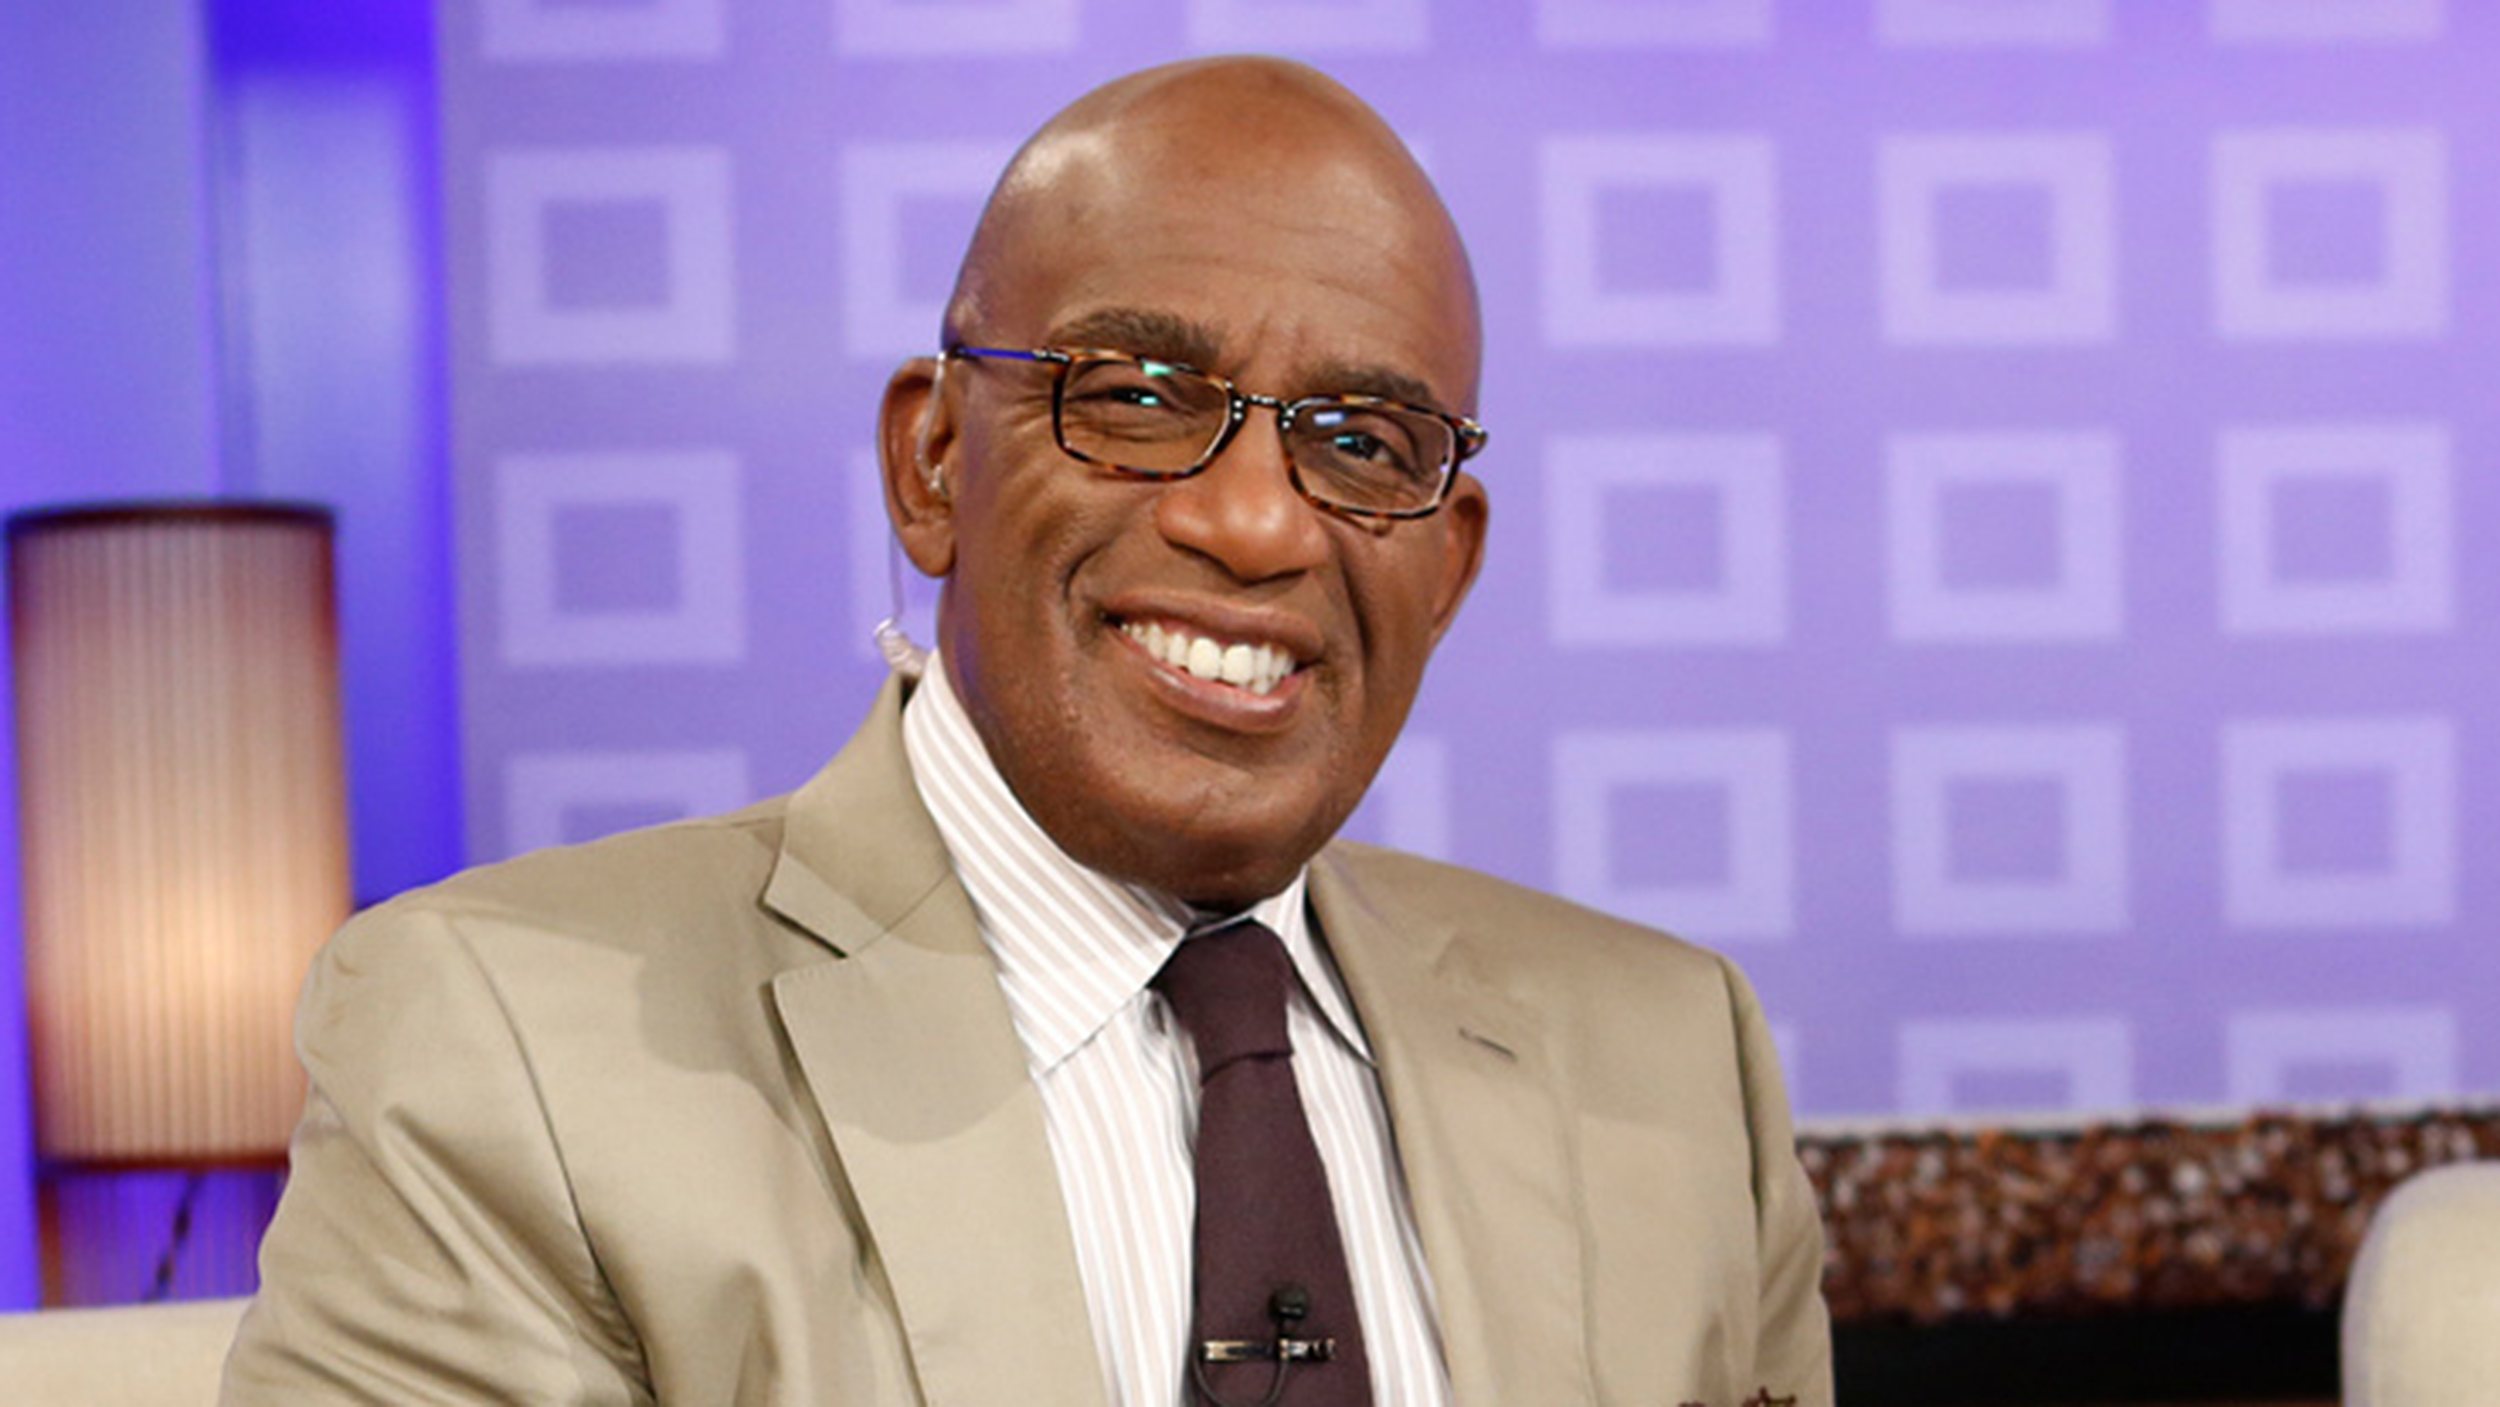 Al Roker Ethnicity, Race, and Nationality